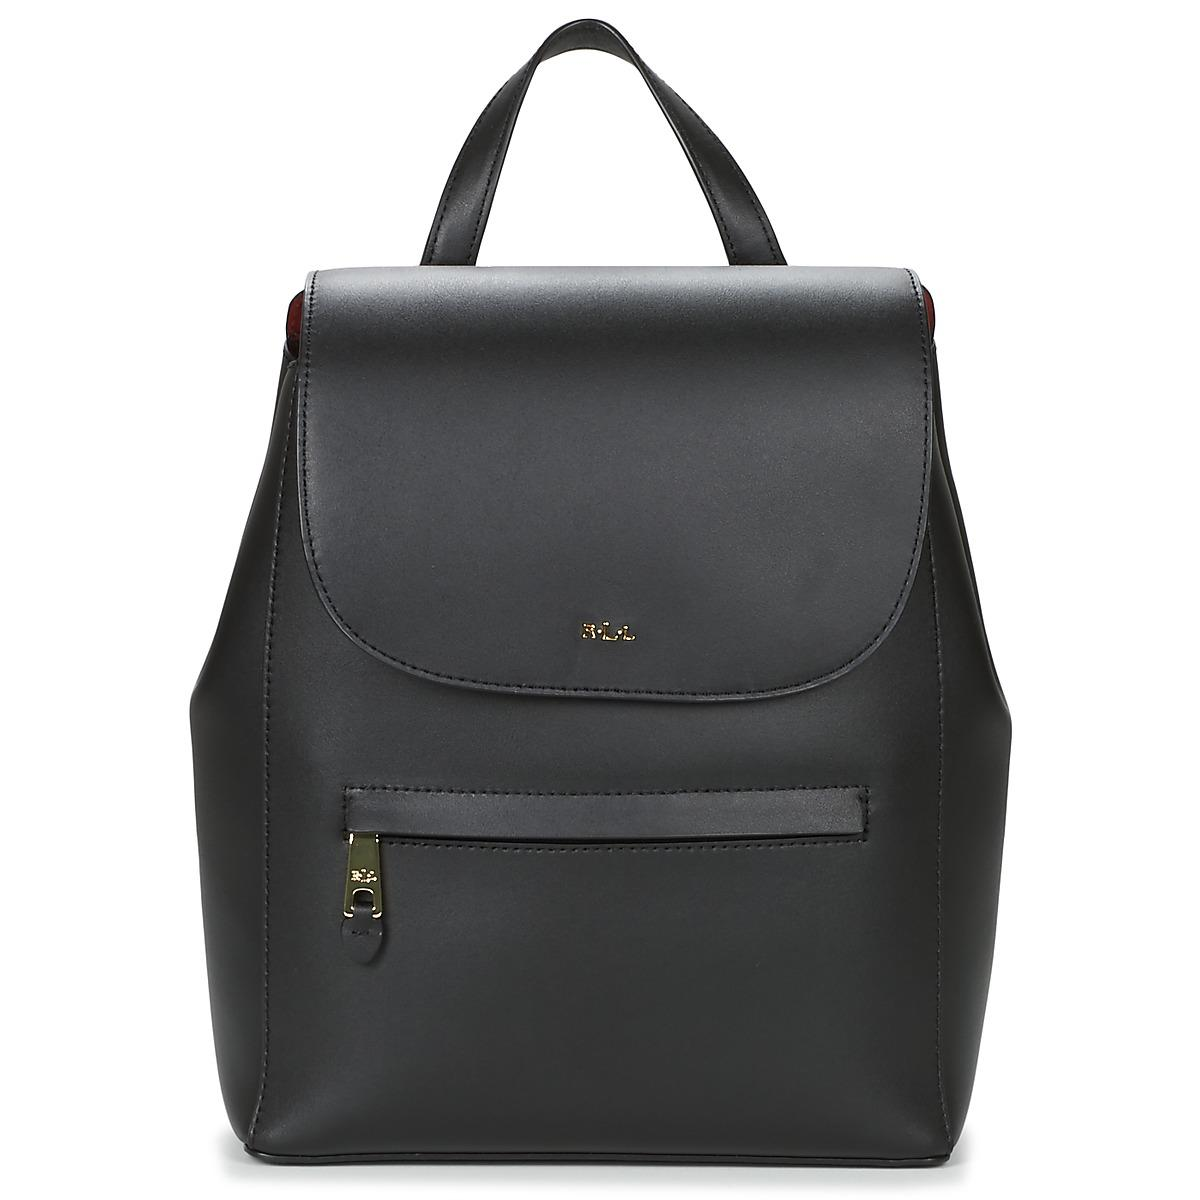 5191f2eae49df Ralph Lauren Dryden Ellen Women s Backpack In Black in Black - Lyst